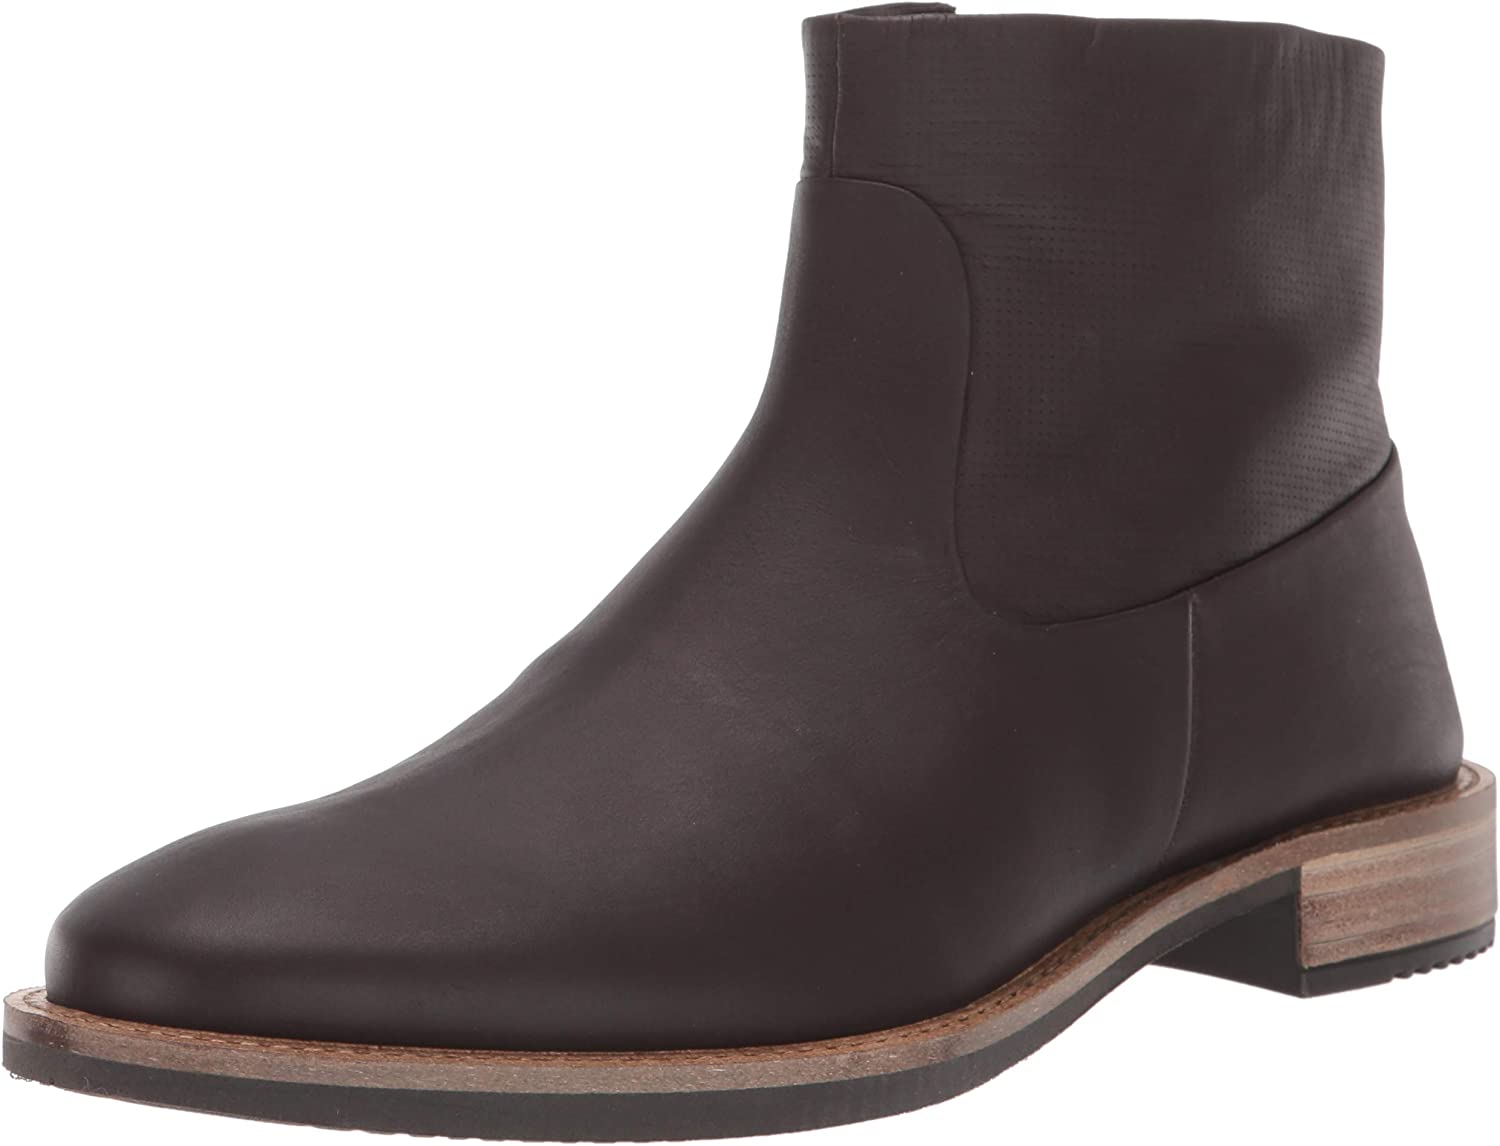 | ECCO Women's Sartorelle 25 Ankle Boot | Ankle